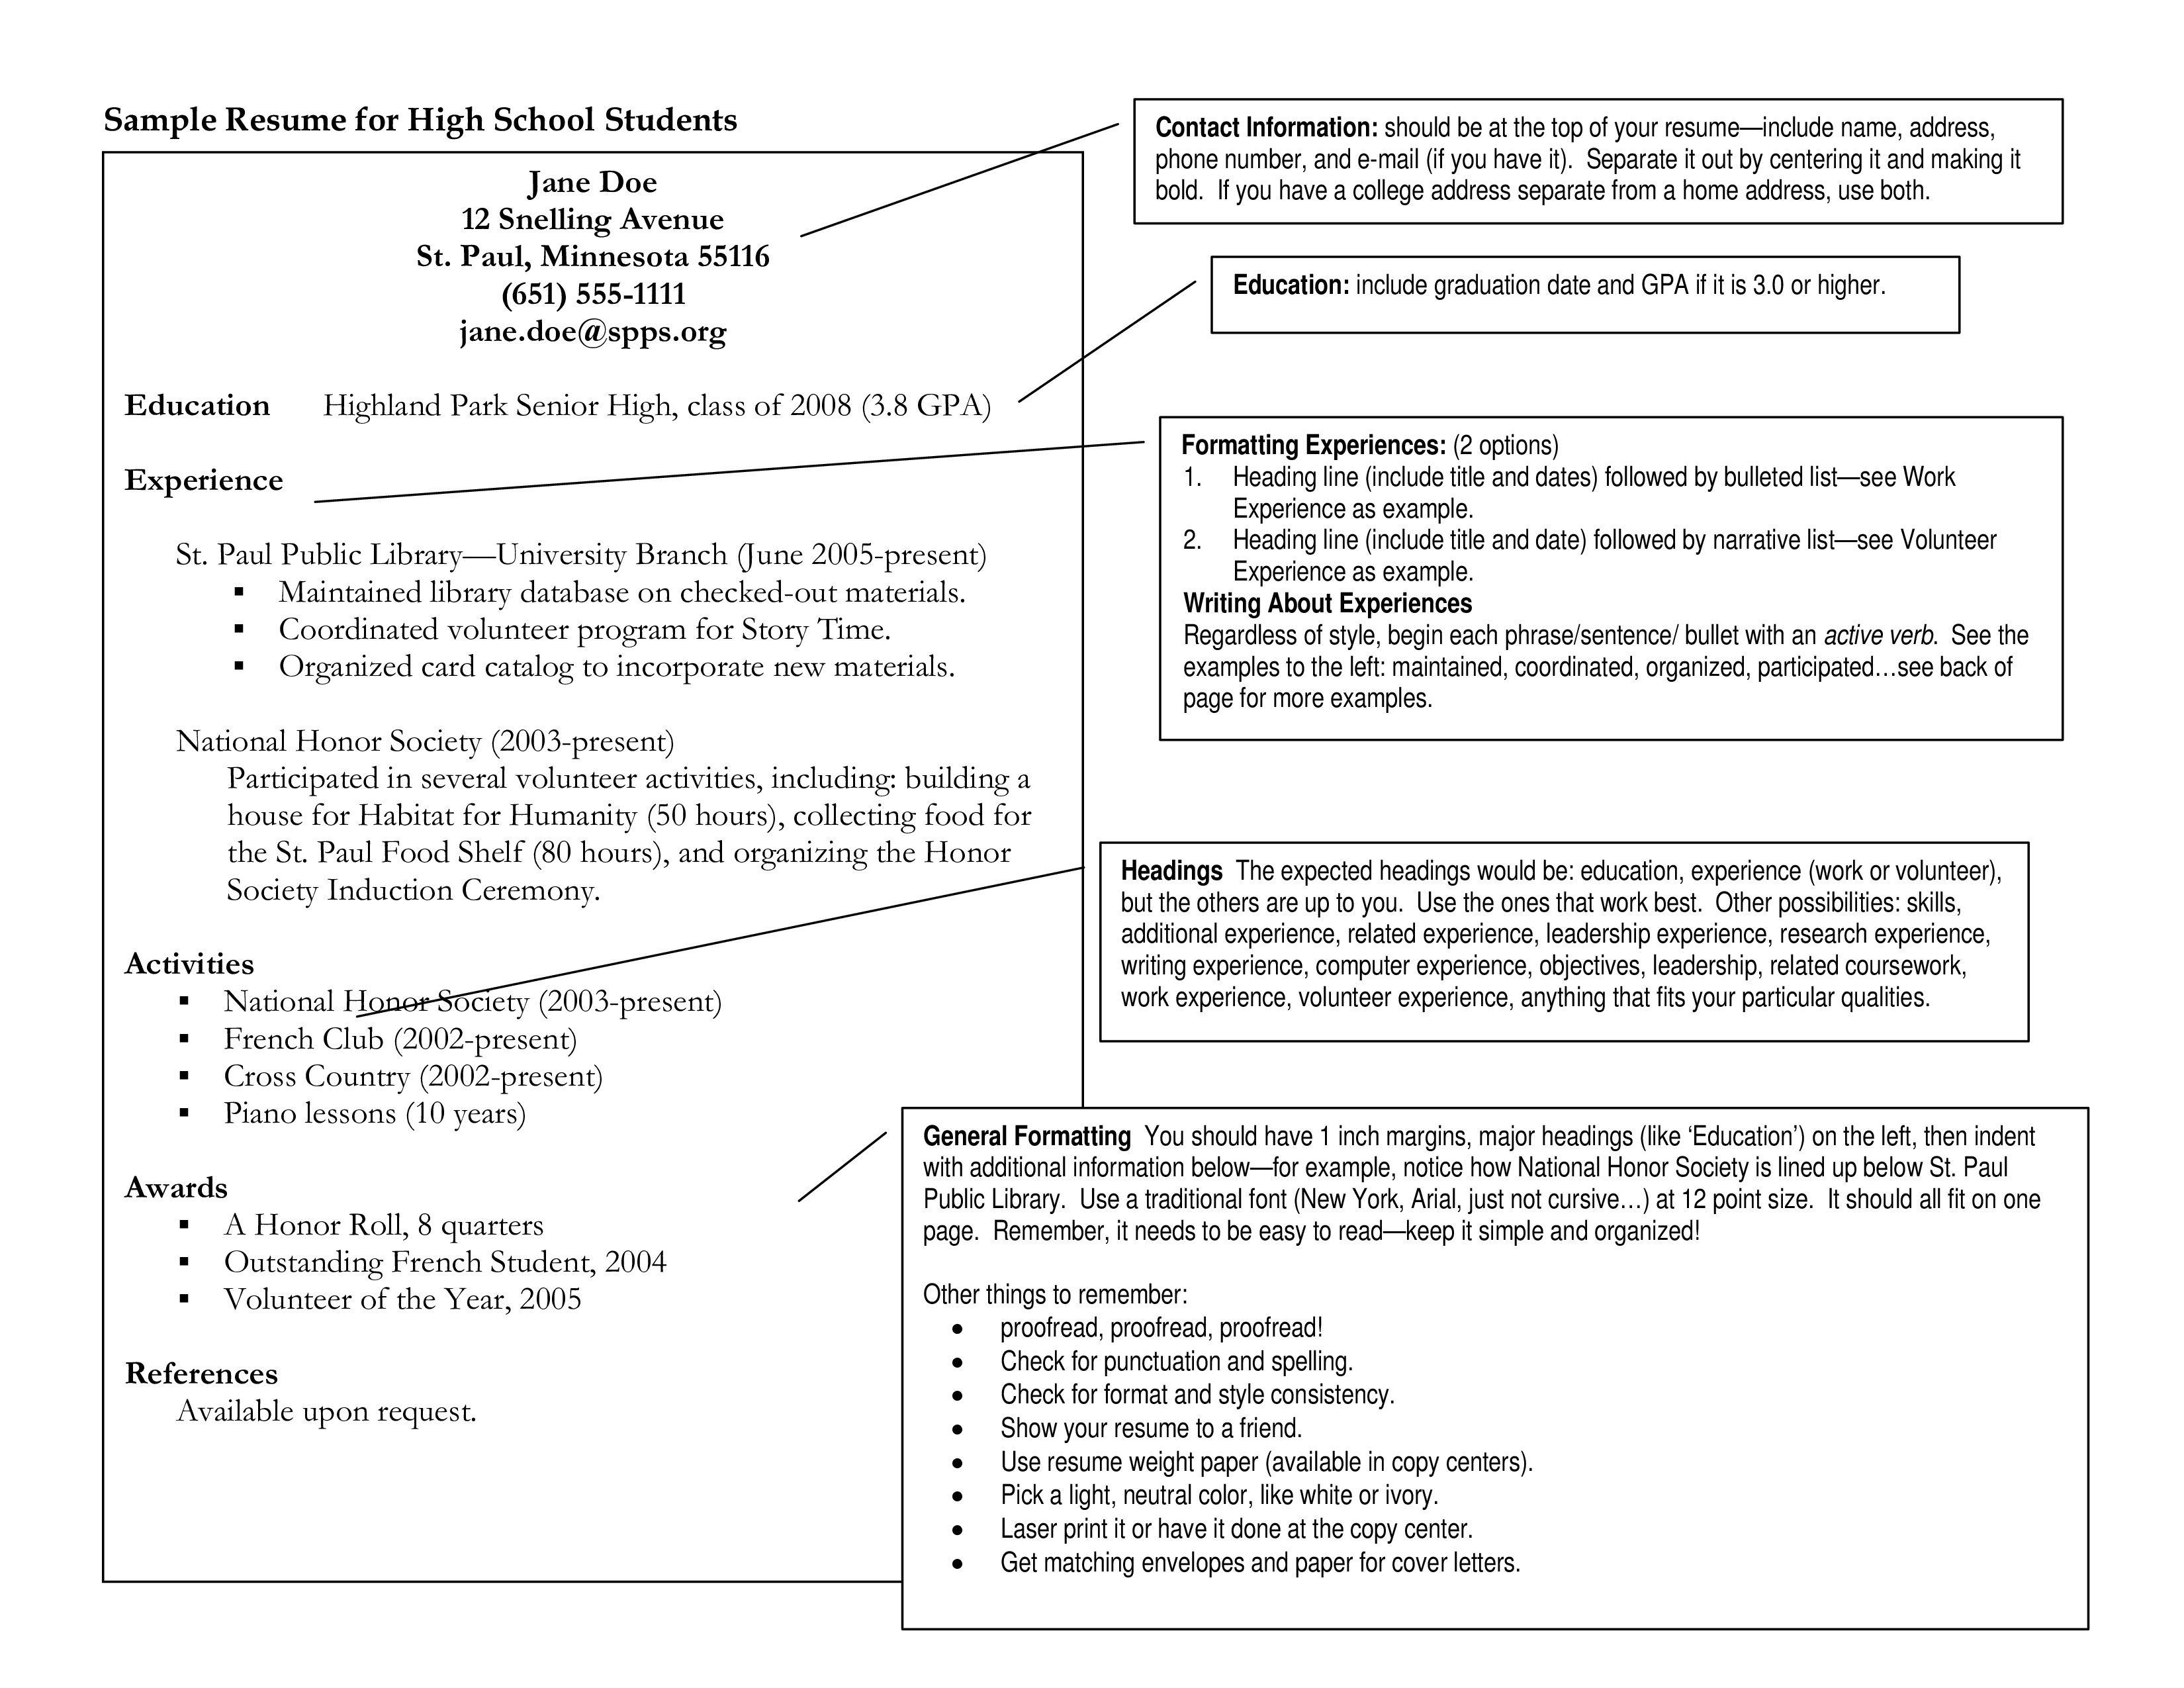 Sample High School Education Resume Templates At